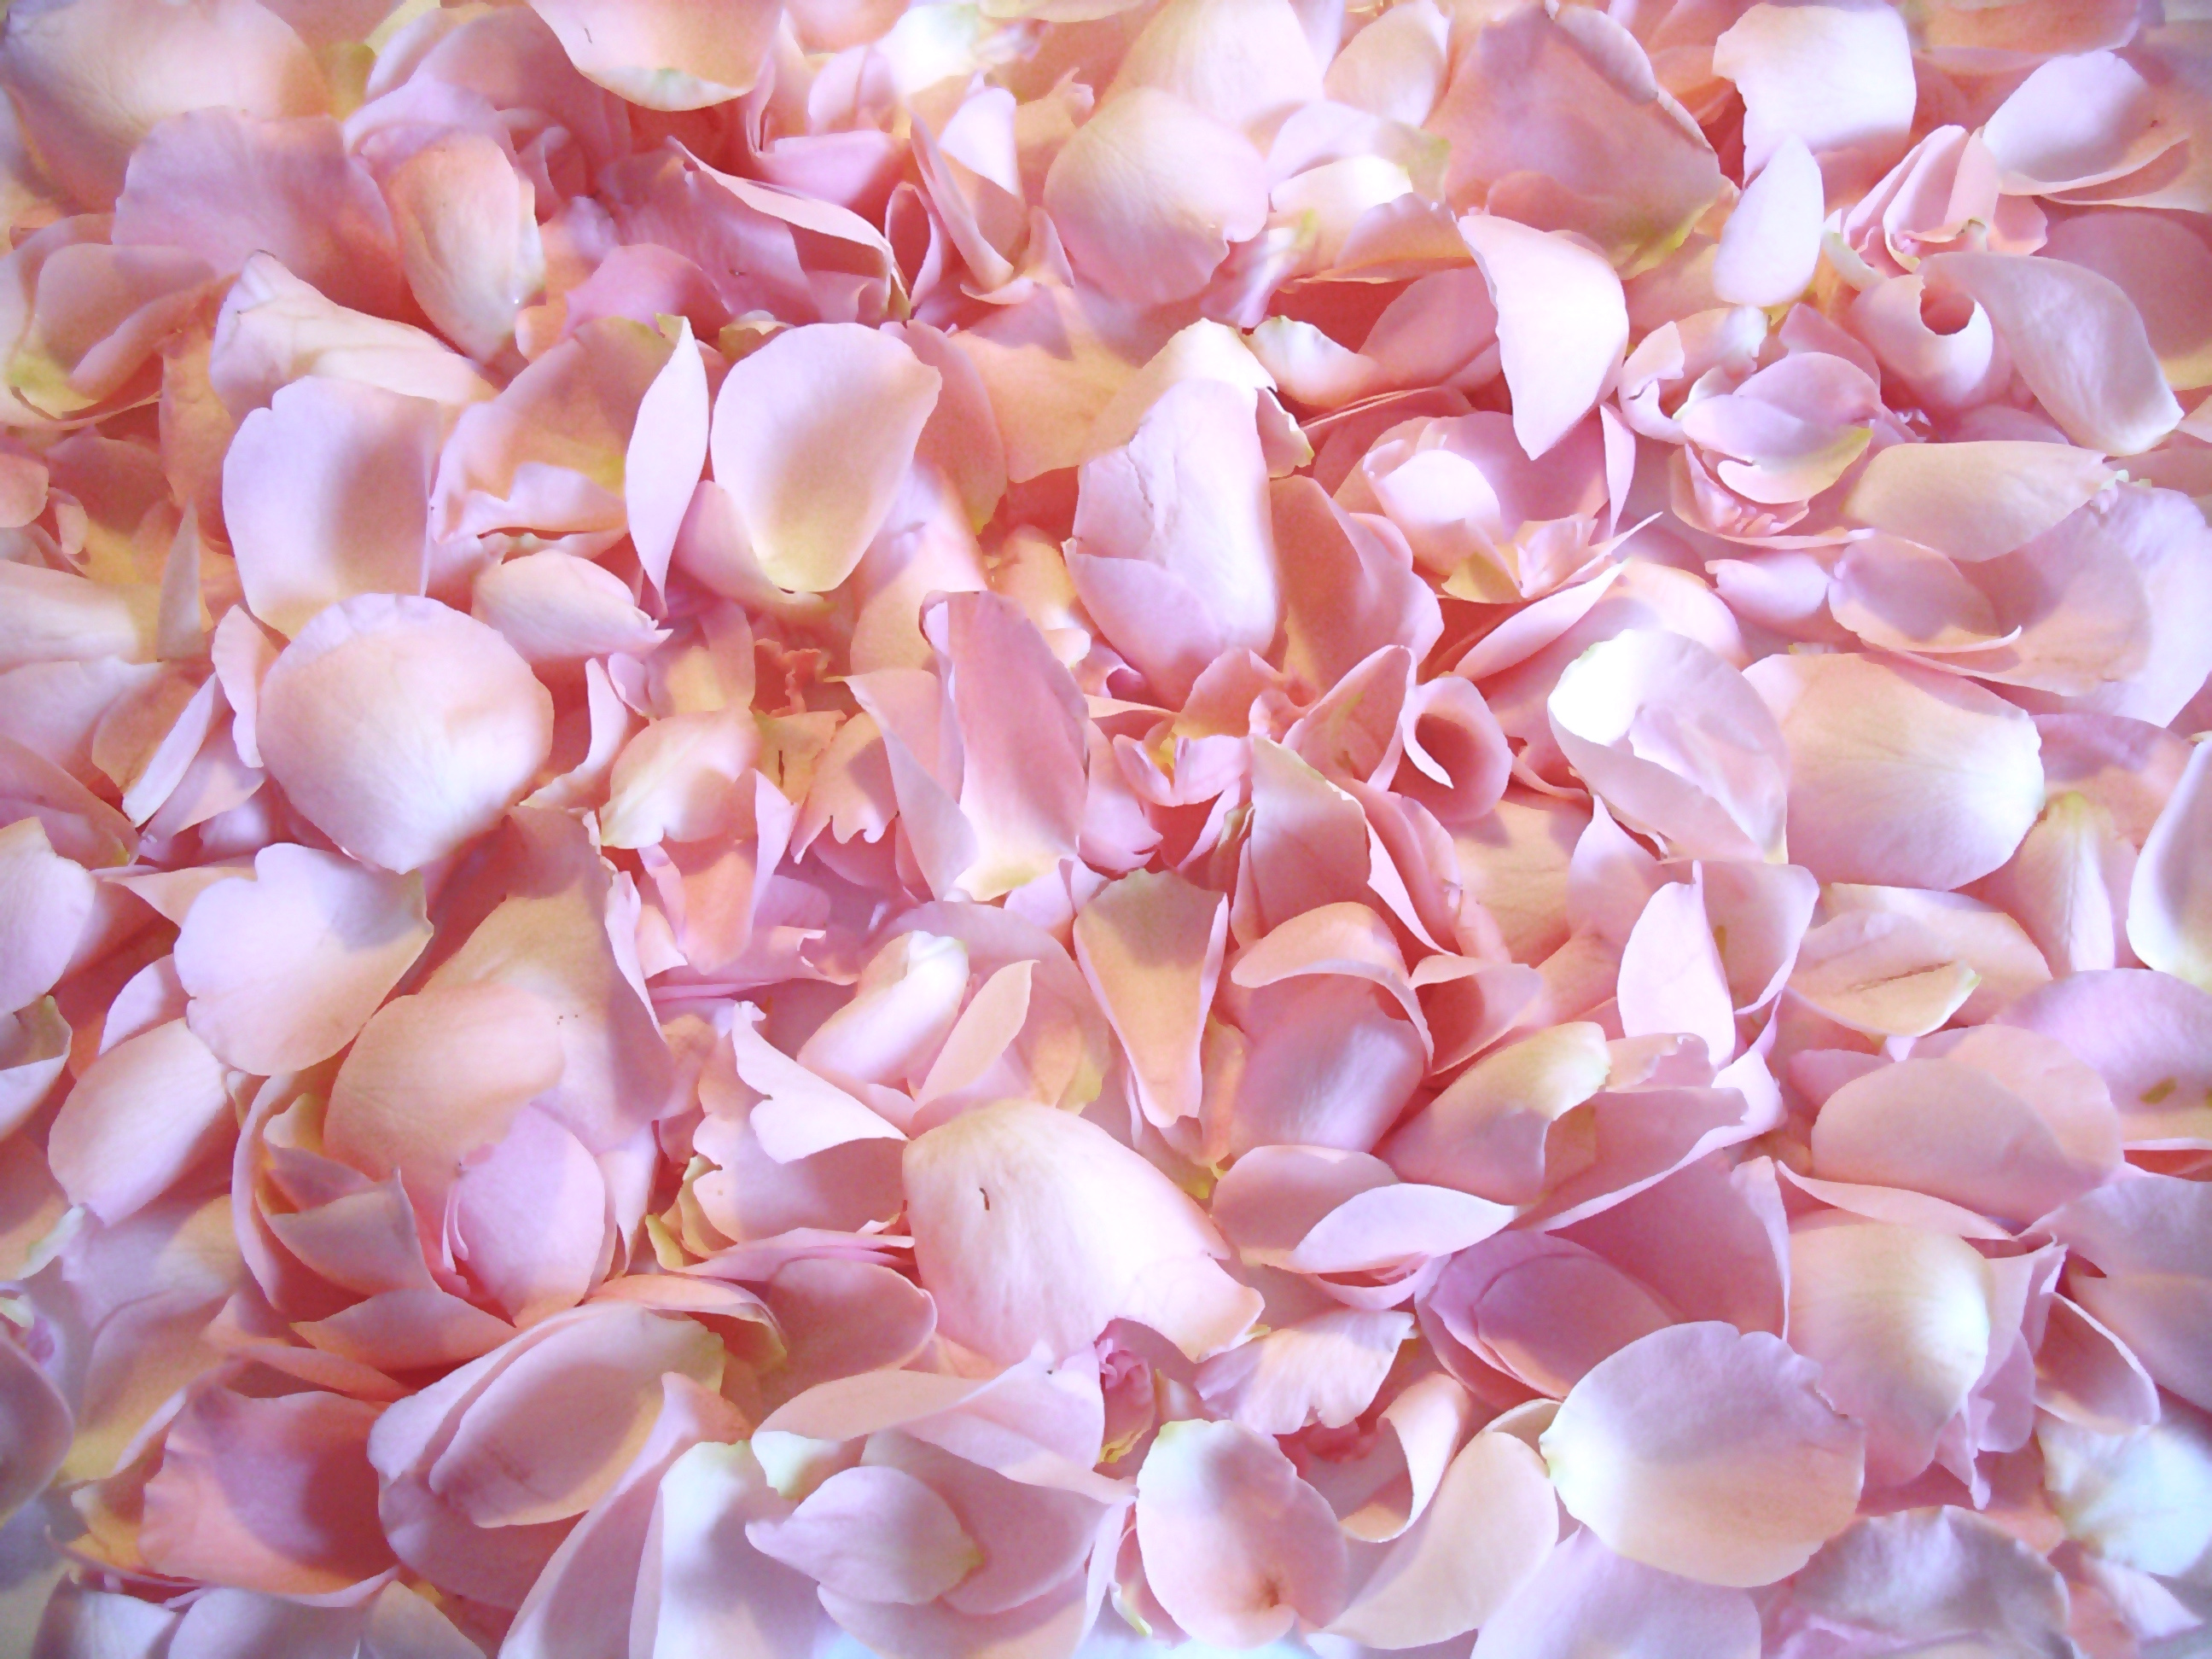 How to make flower confetti